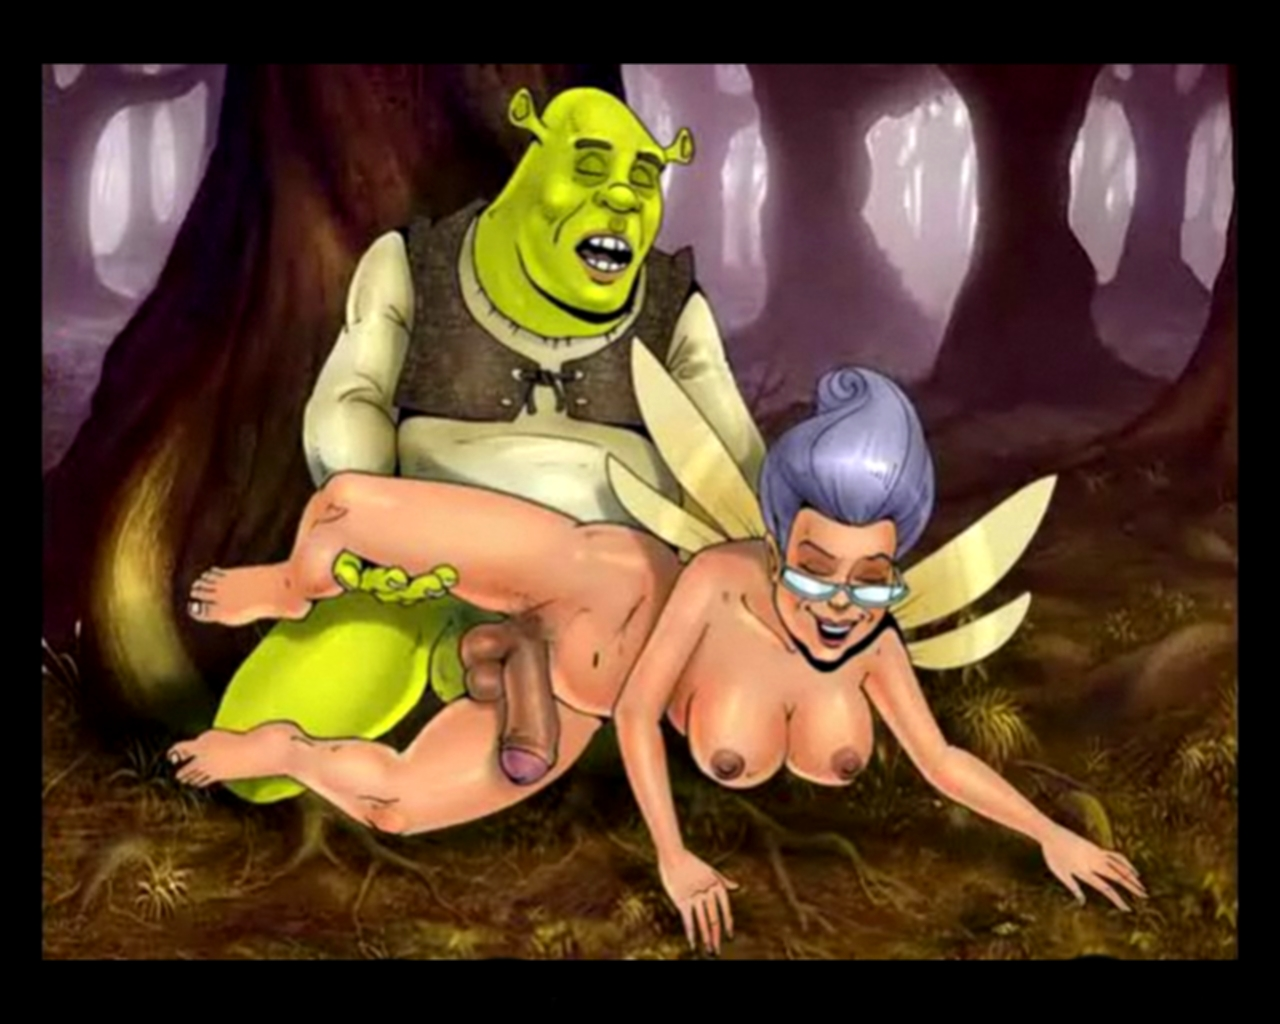 shrek-porn-girls-videos-de-larga-duracion-gratis